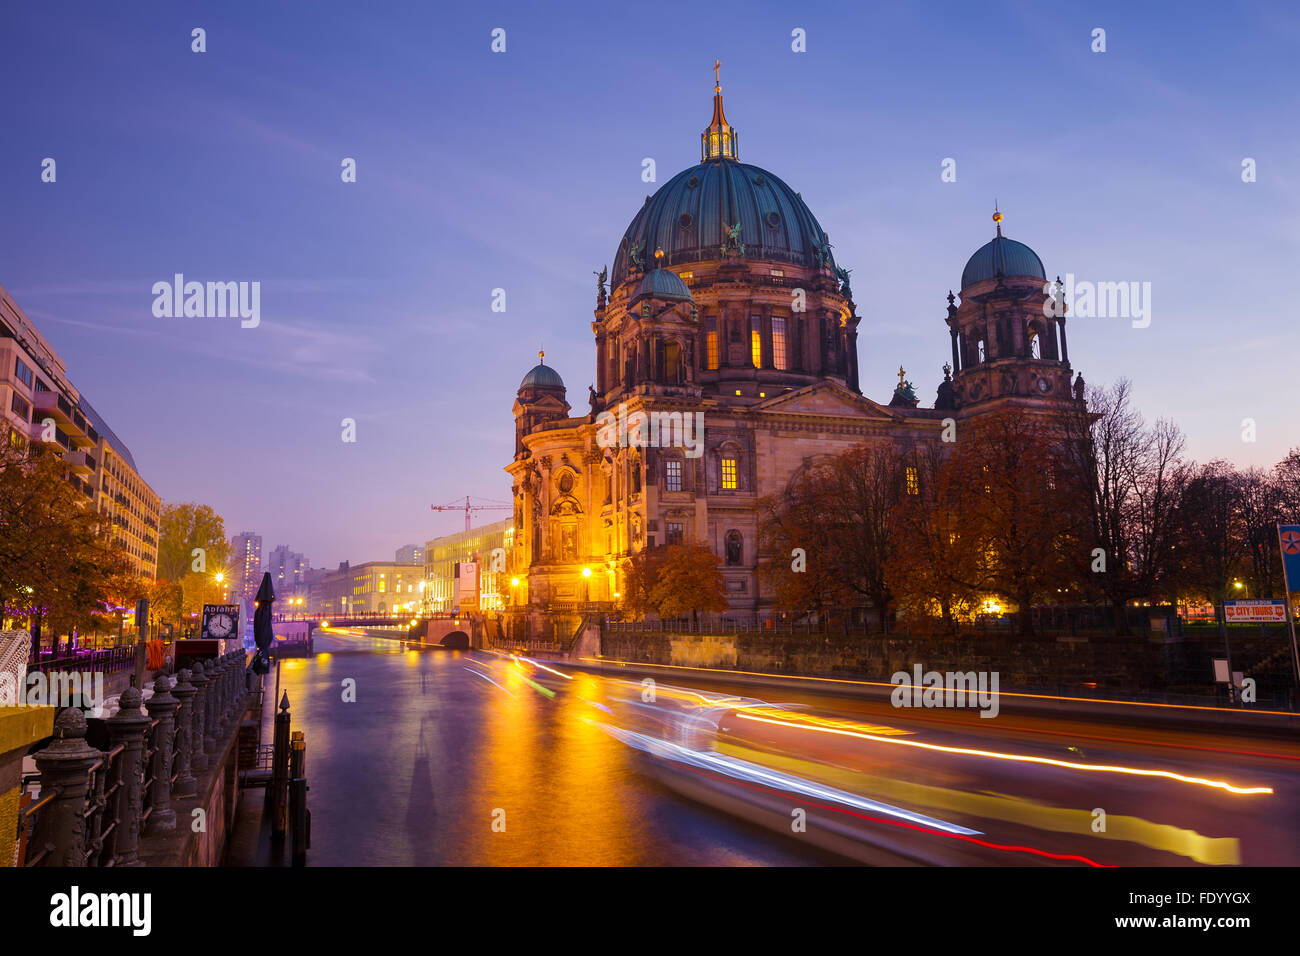 BERLIN, GERMANY - OCTOBER 31, 2015 : Night view of Berlin Cathedral from the banks of the River Spree. - Stock Image